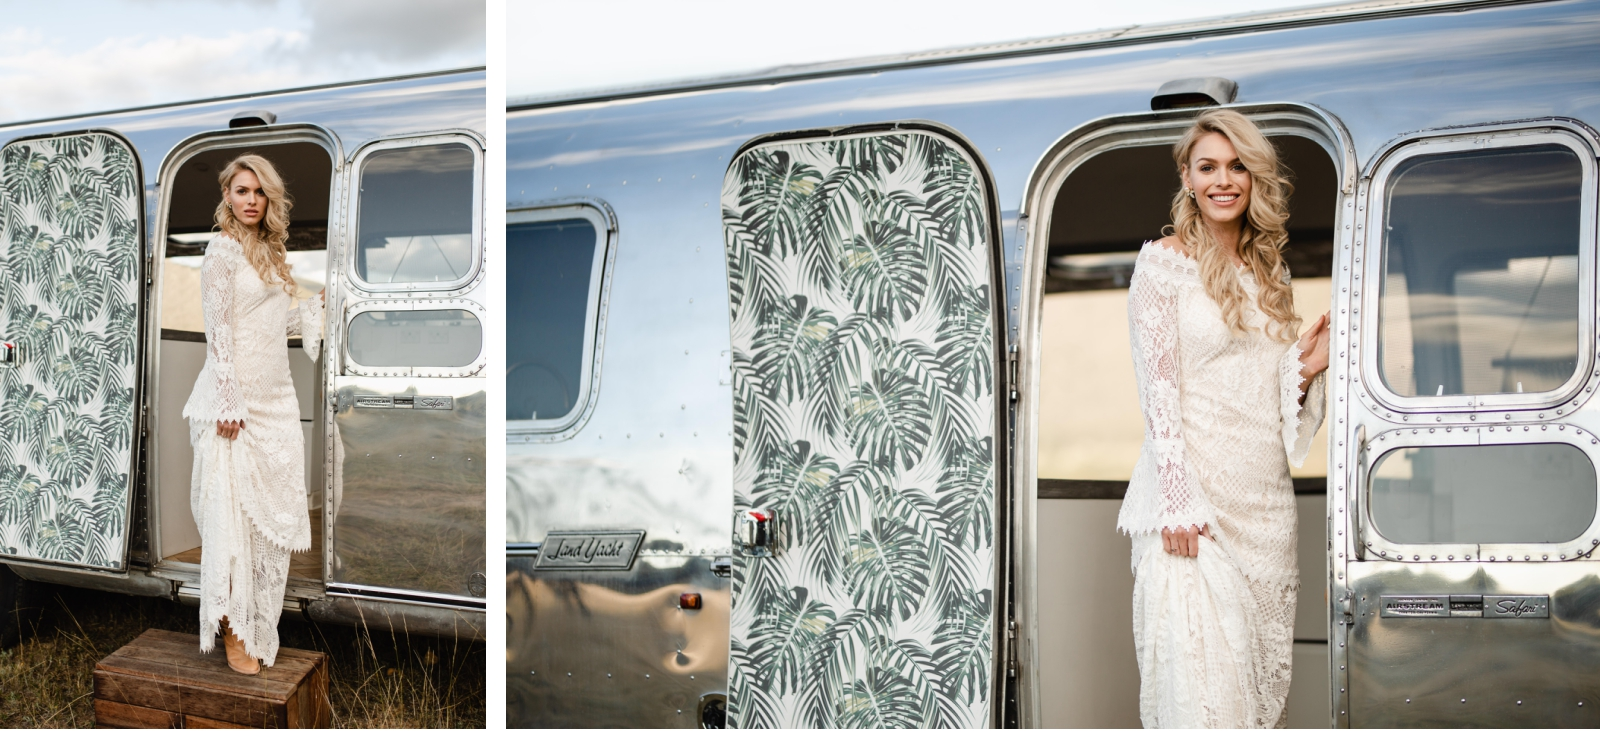 hunter-valley-wedding-planner-styled-shoot-the-airstream-social-broke-nsw-14